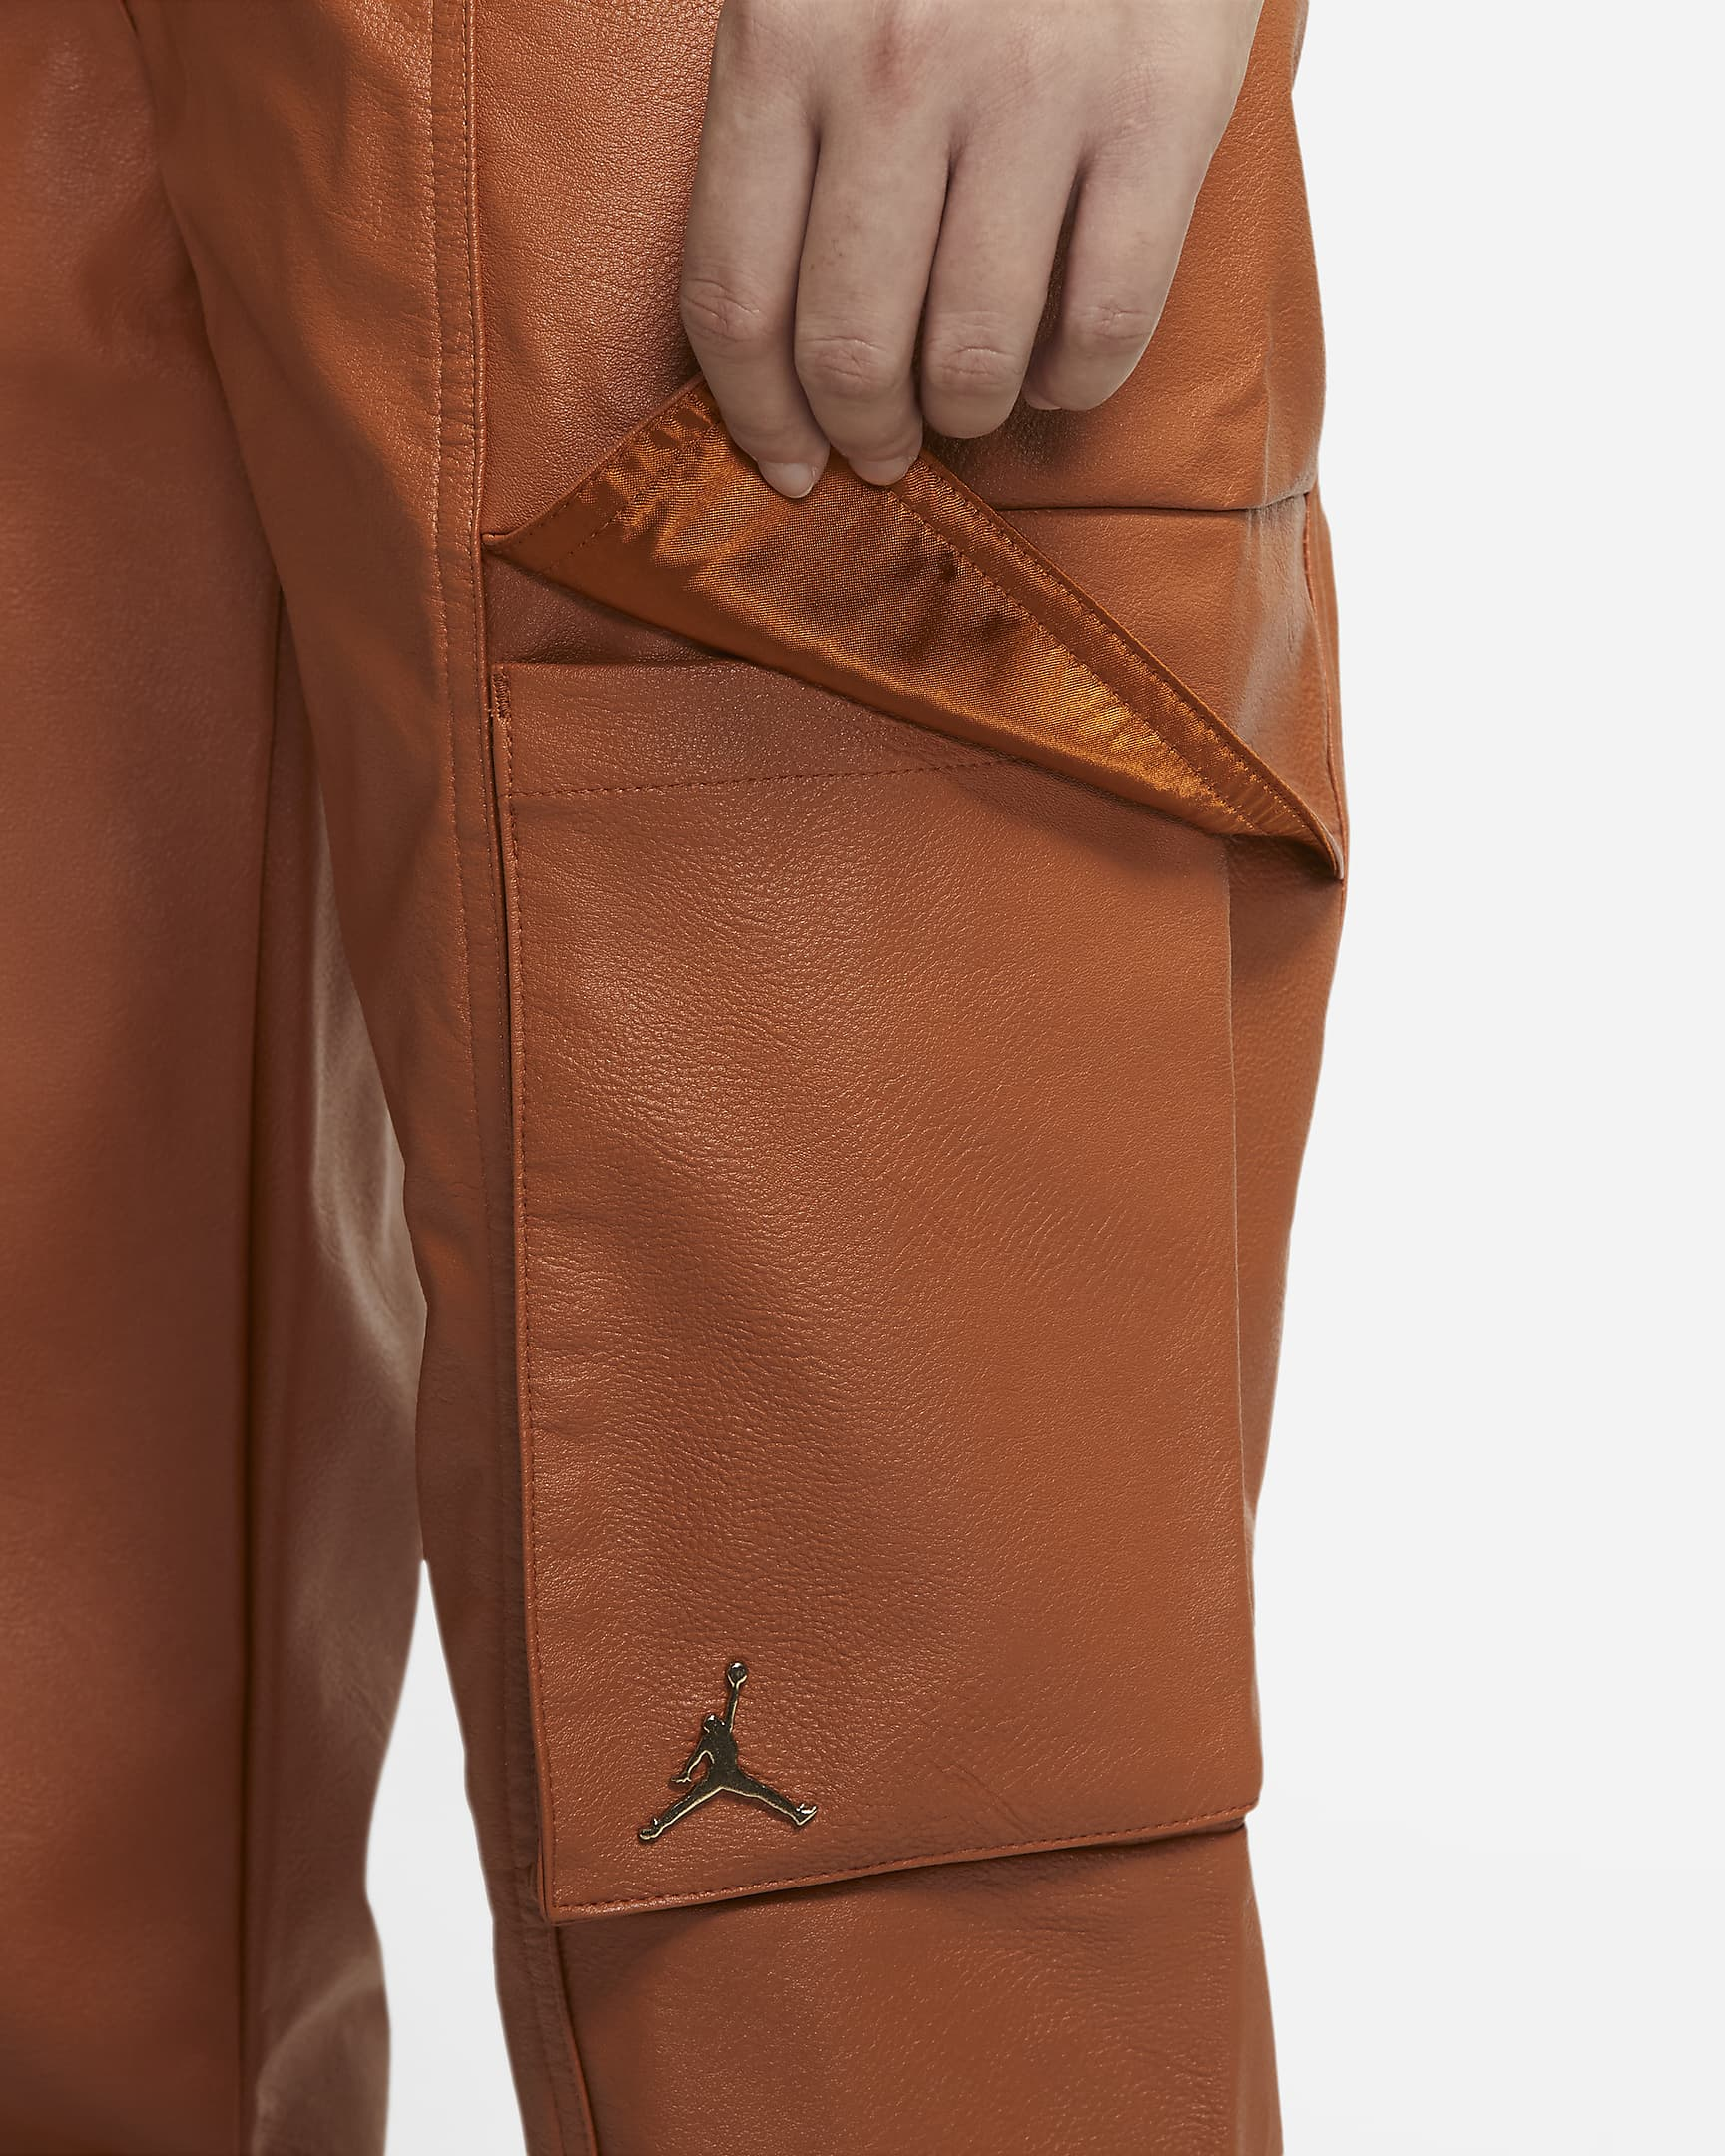 jordan-court-to-runway-womens-faux-leather-utility-pants-B740cR-1